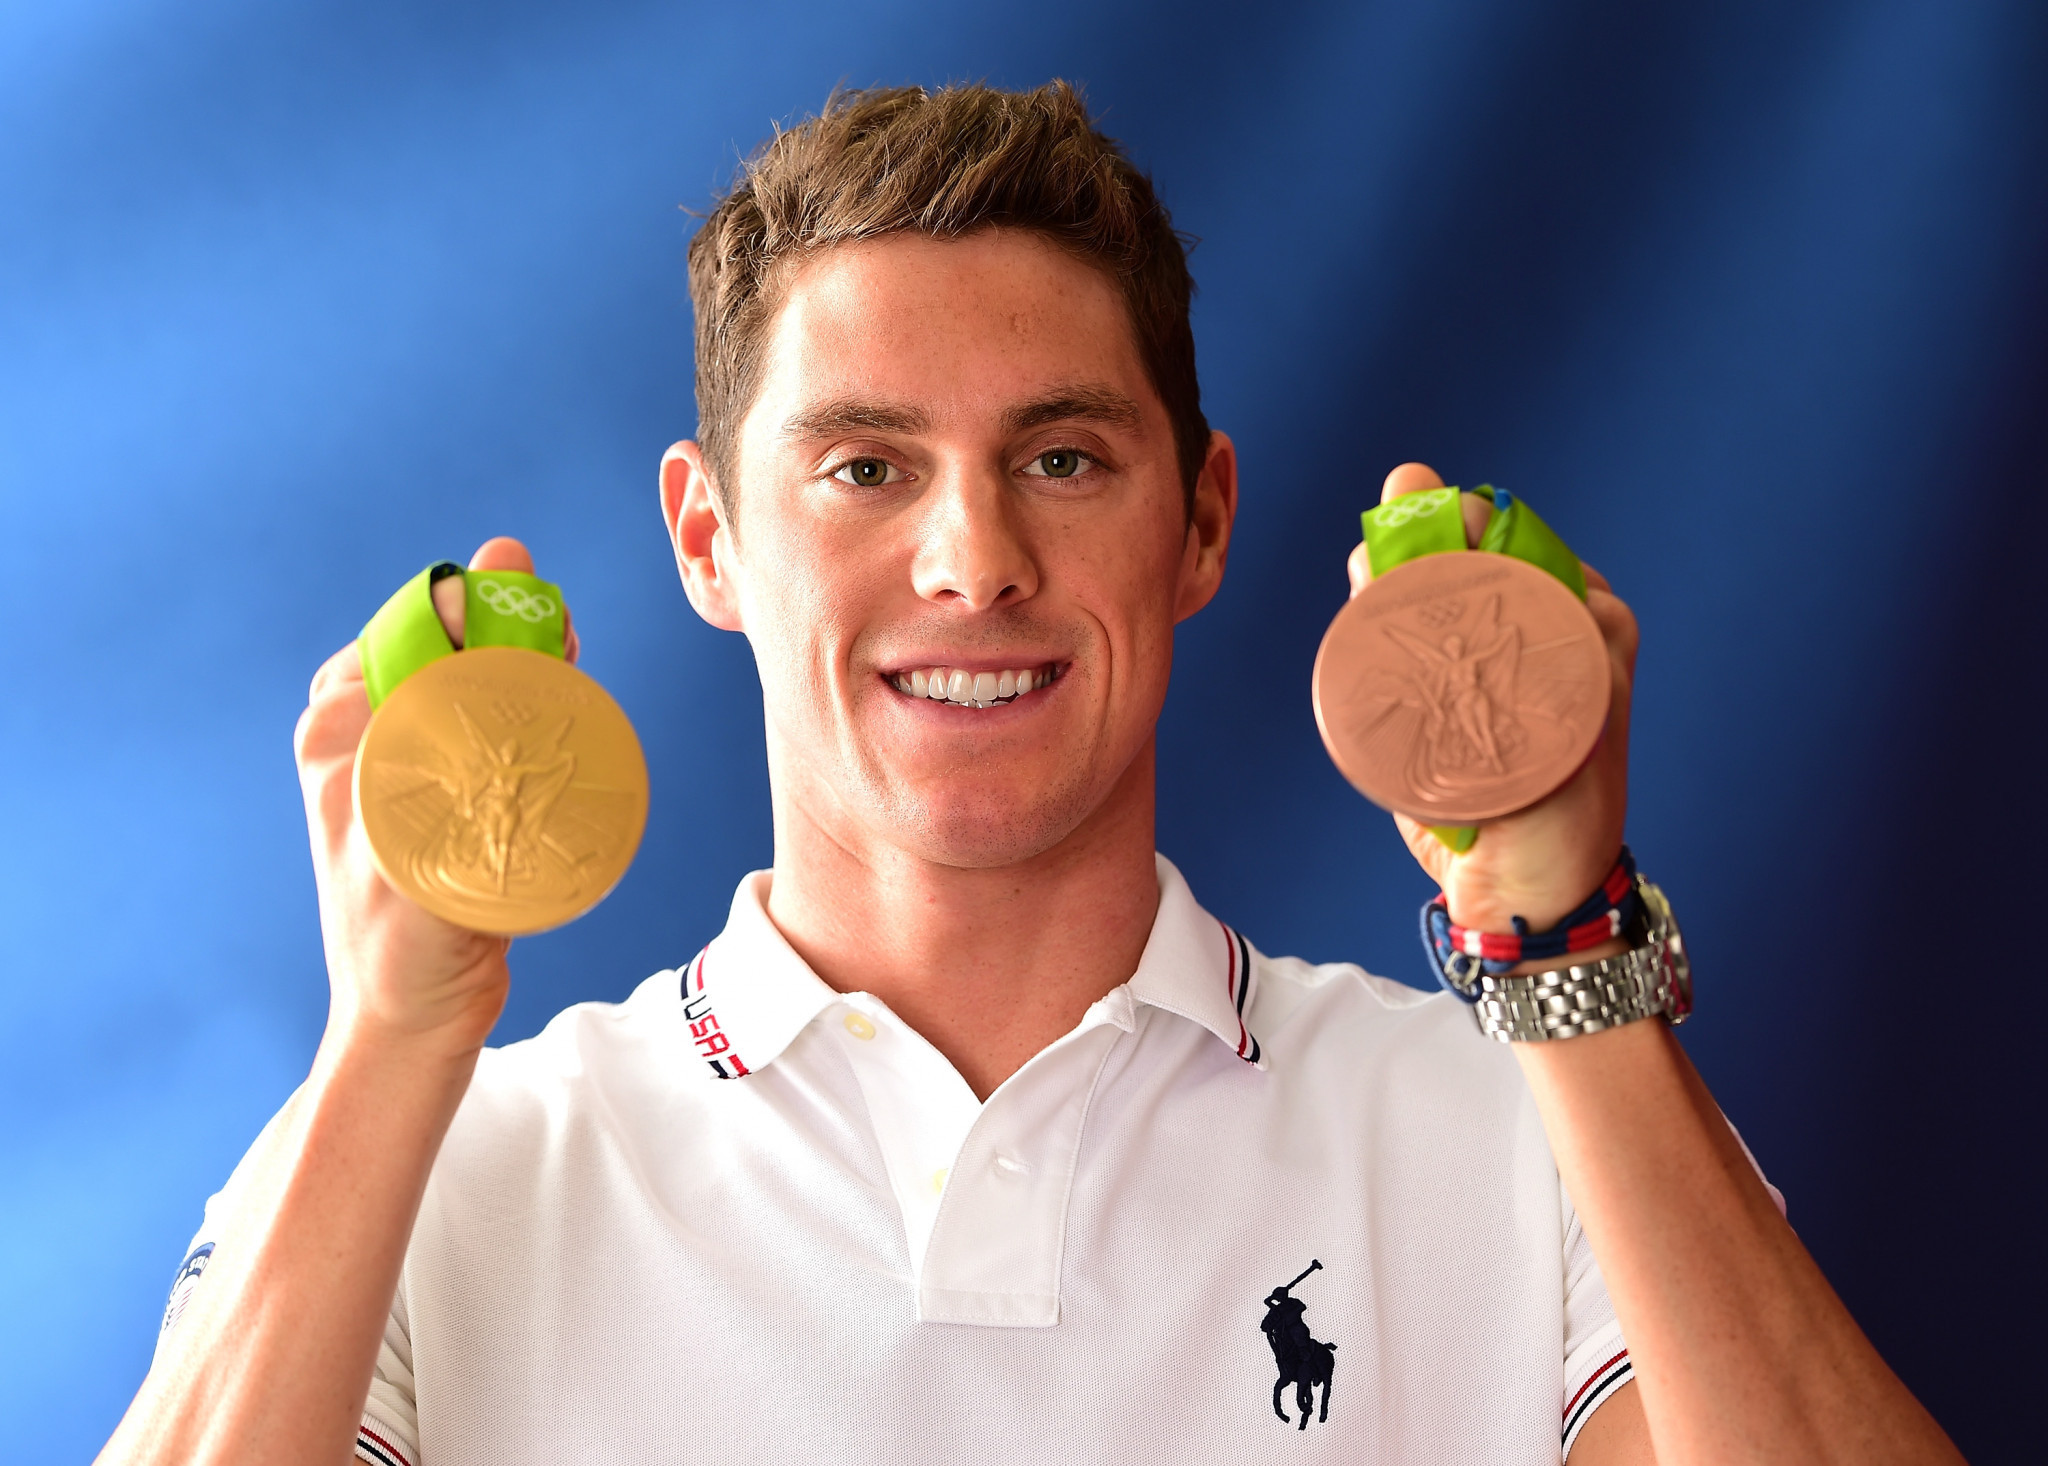 Conor Dwyer won relay gold and individual bronze at the 2016 Olympic Games in Rio ©Getty Images